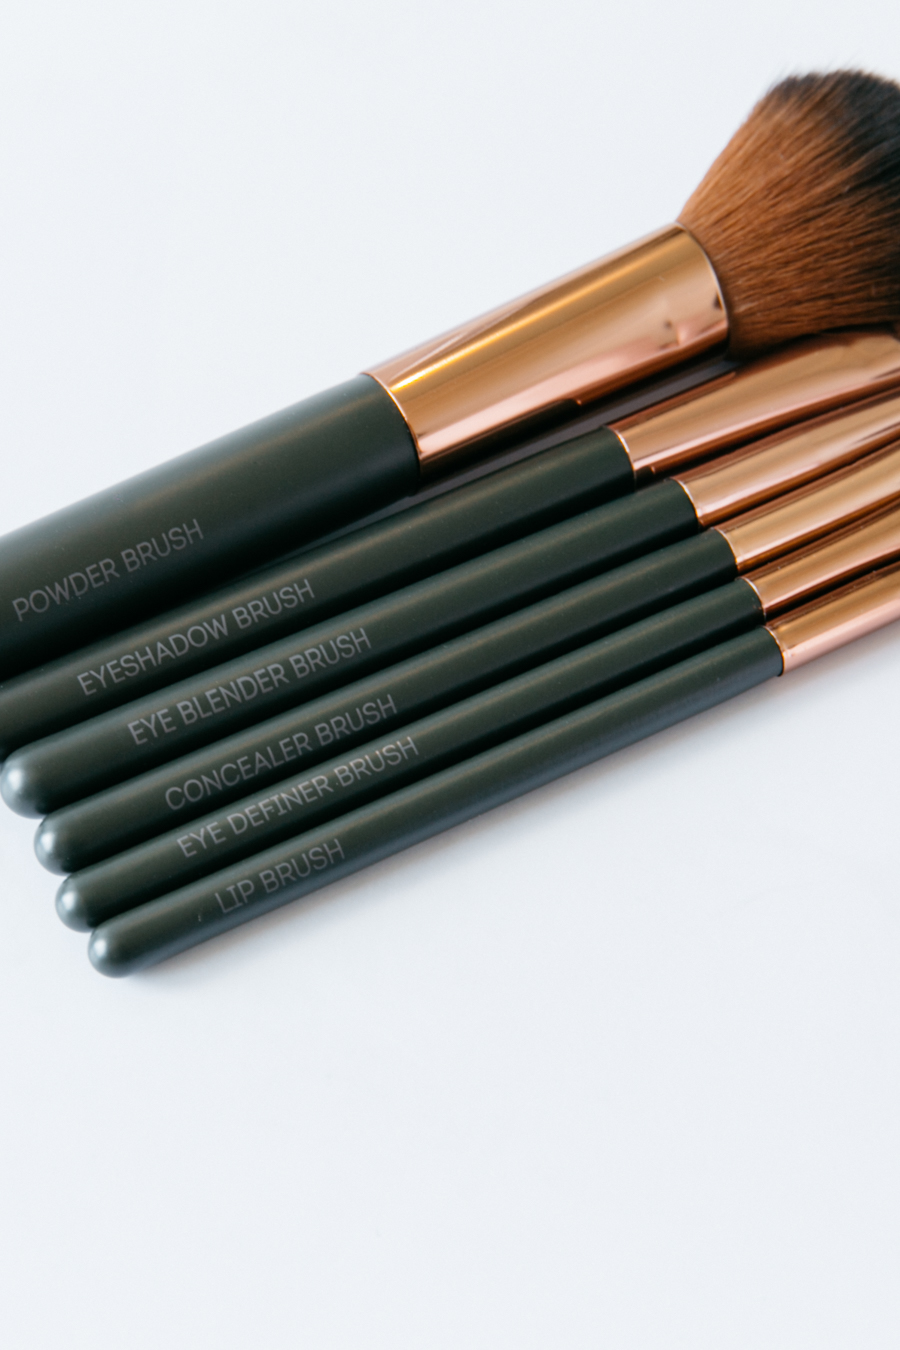 Affordable pro makeup brushes.